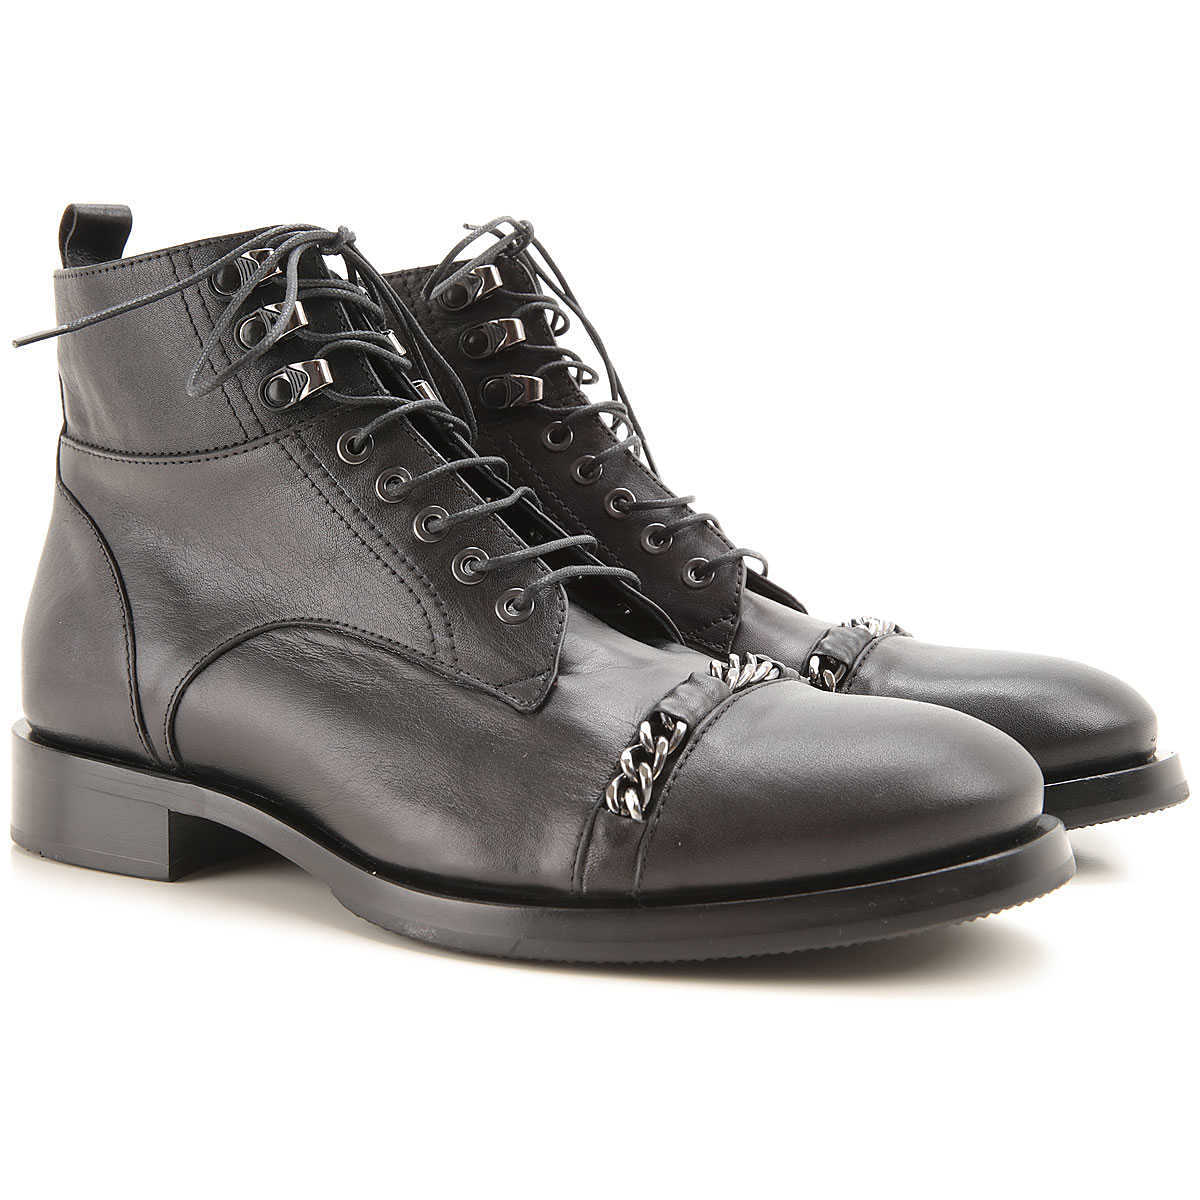 Karl Lagerfeld Boots for Men 10 11 Booties On Sale UK - GOOFASH